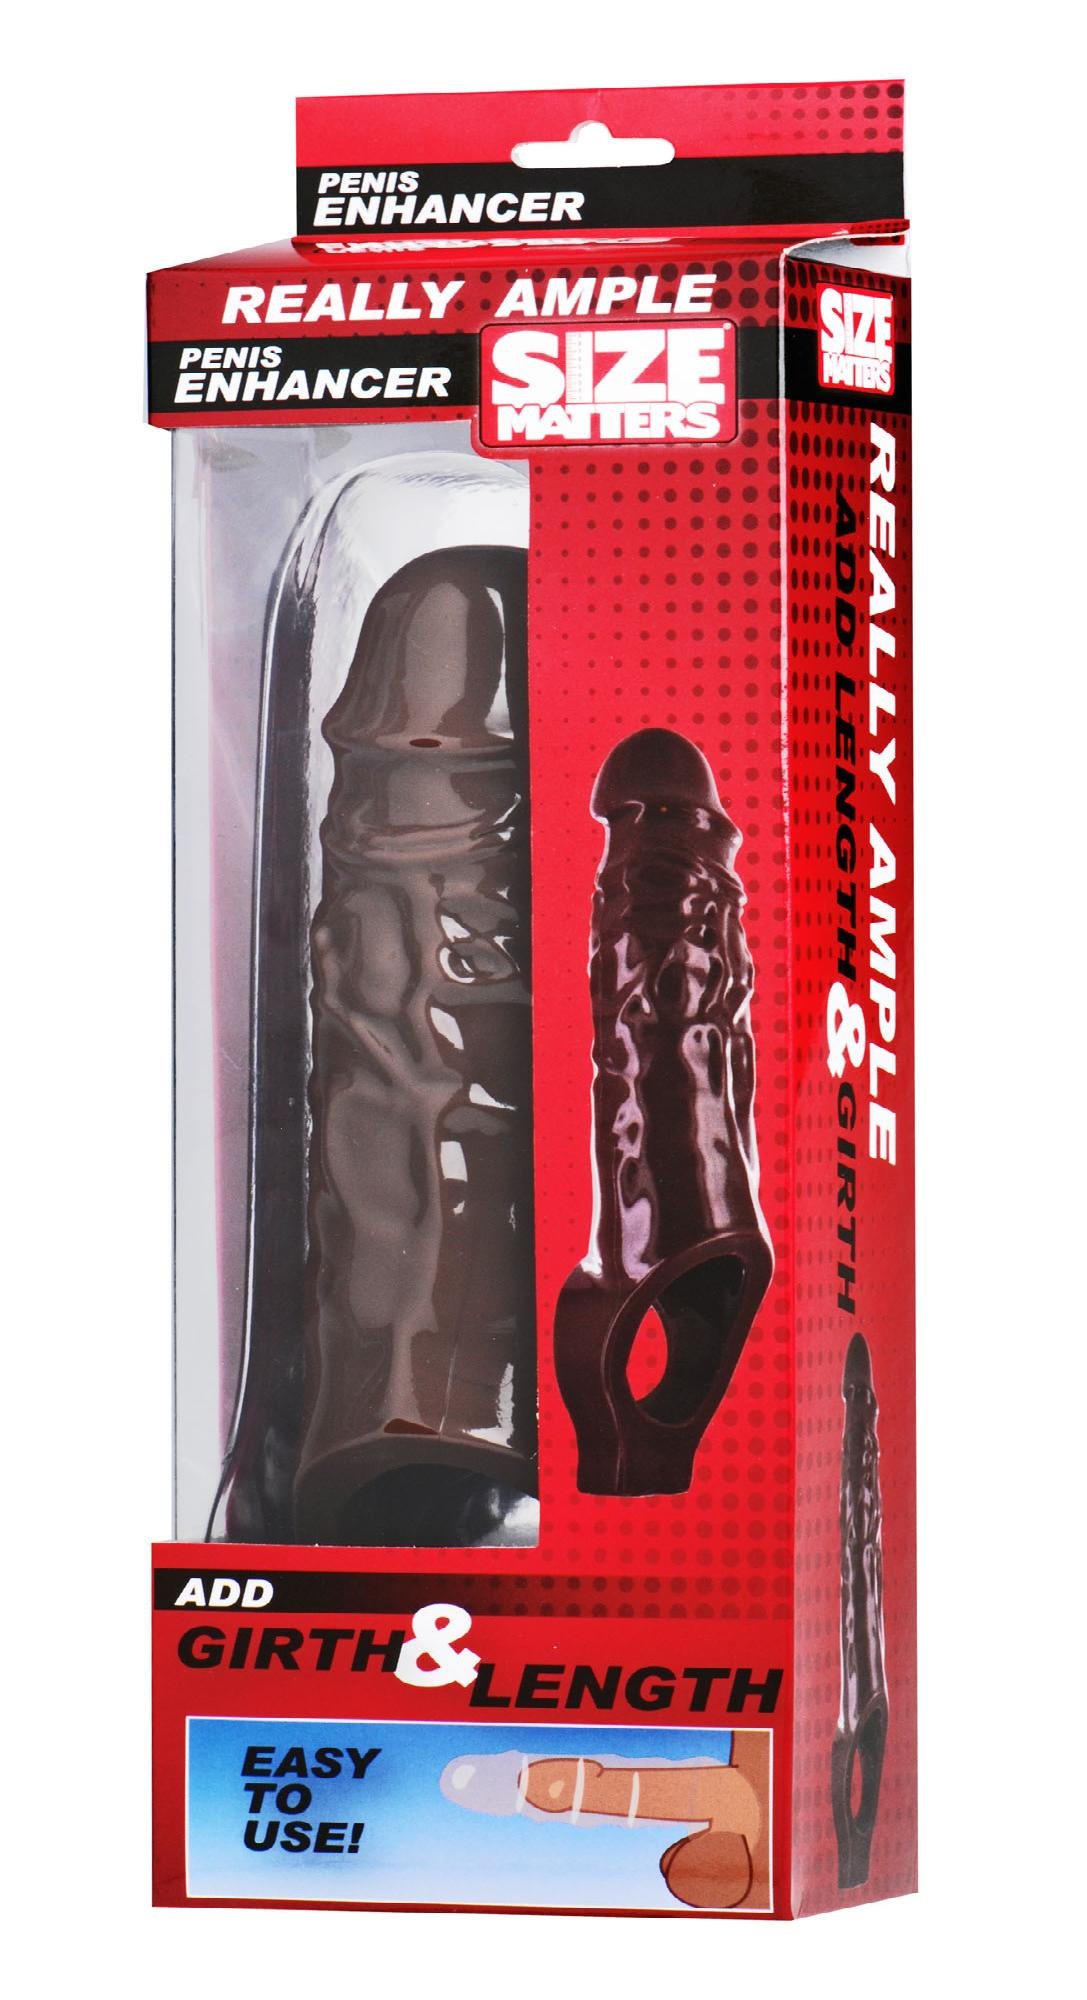 Really Ample Penis Enhancer Sheath- Brown